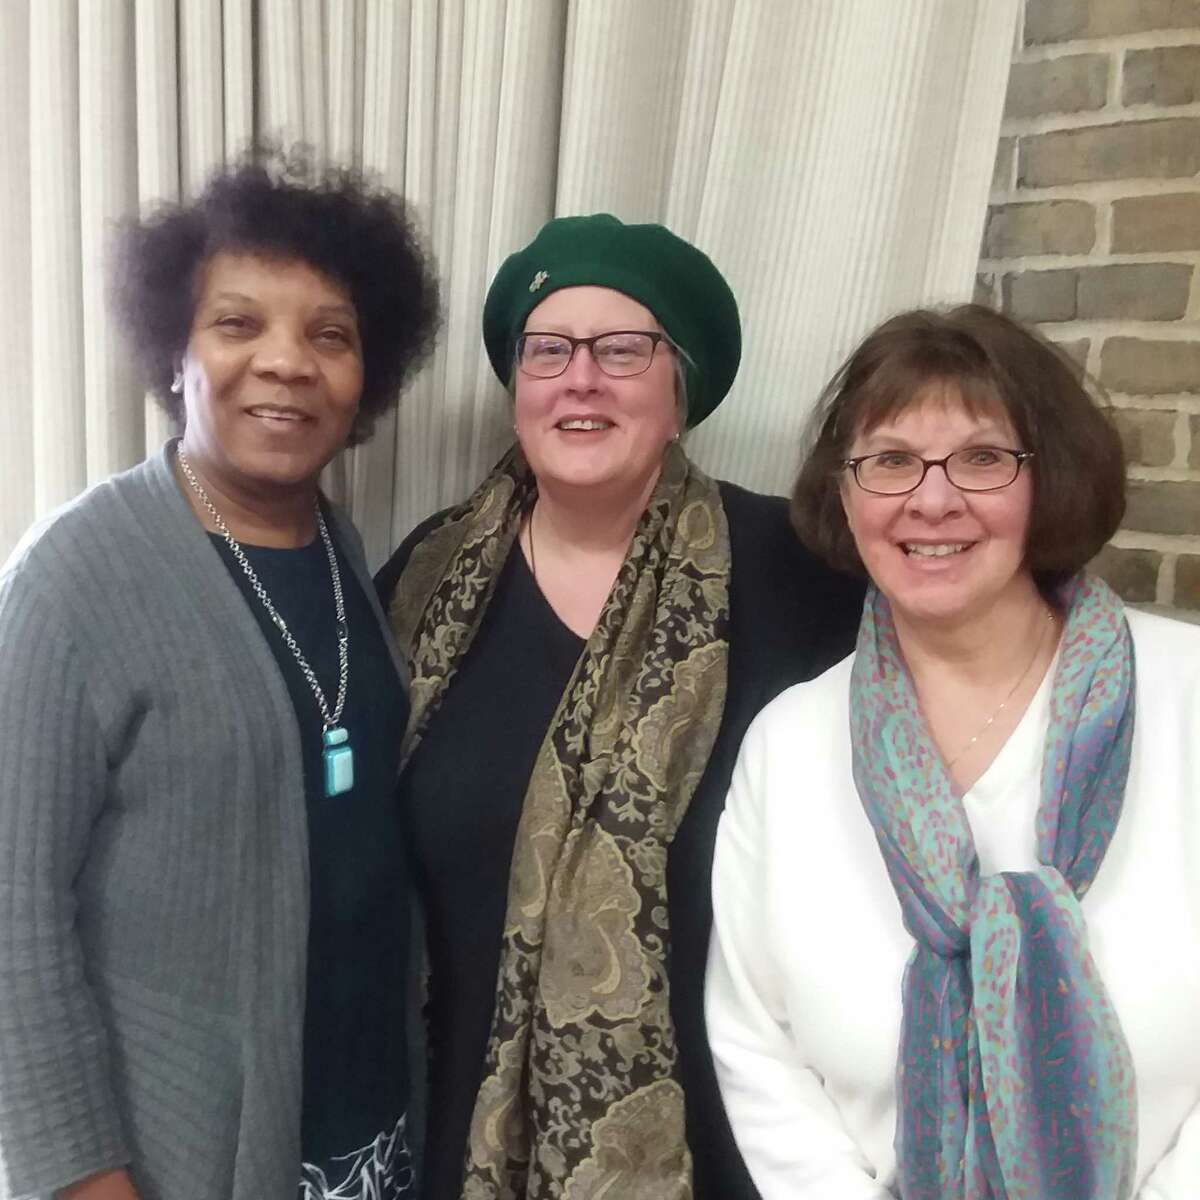 Crime writers Frankie Y. Bailey, K. A. Laity, Carol Pouliot, and Robert Knightly (not shown) headline the 2018 Murderous March Writers' and Reader' Confab on March 24 at the East Greenbush Community Library. (Provided)